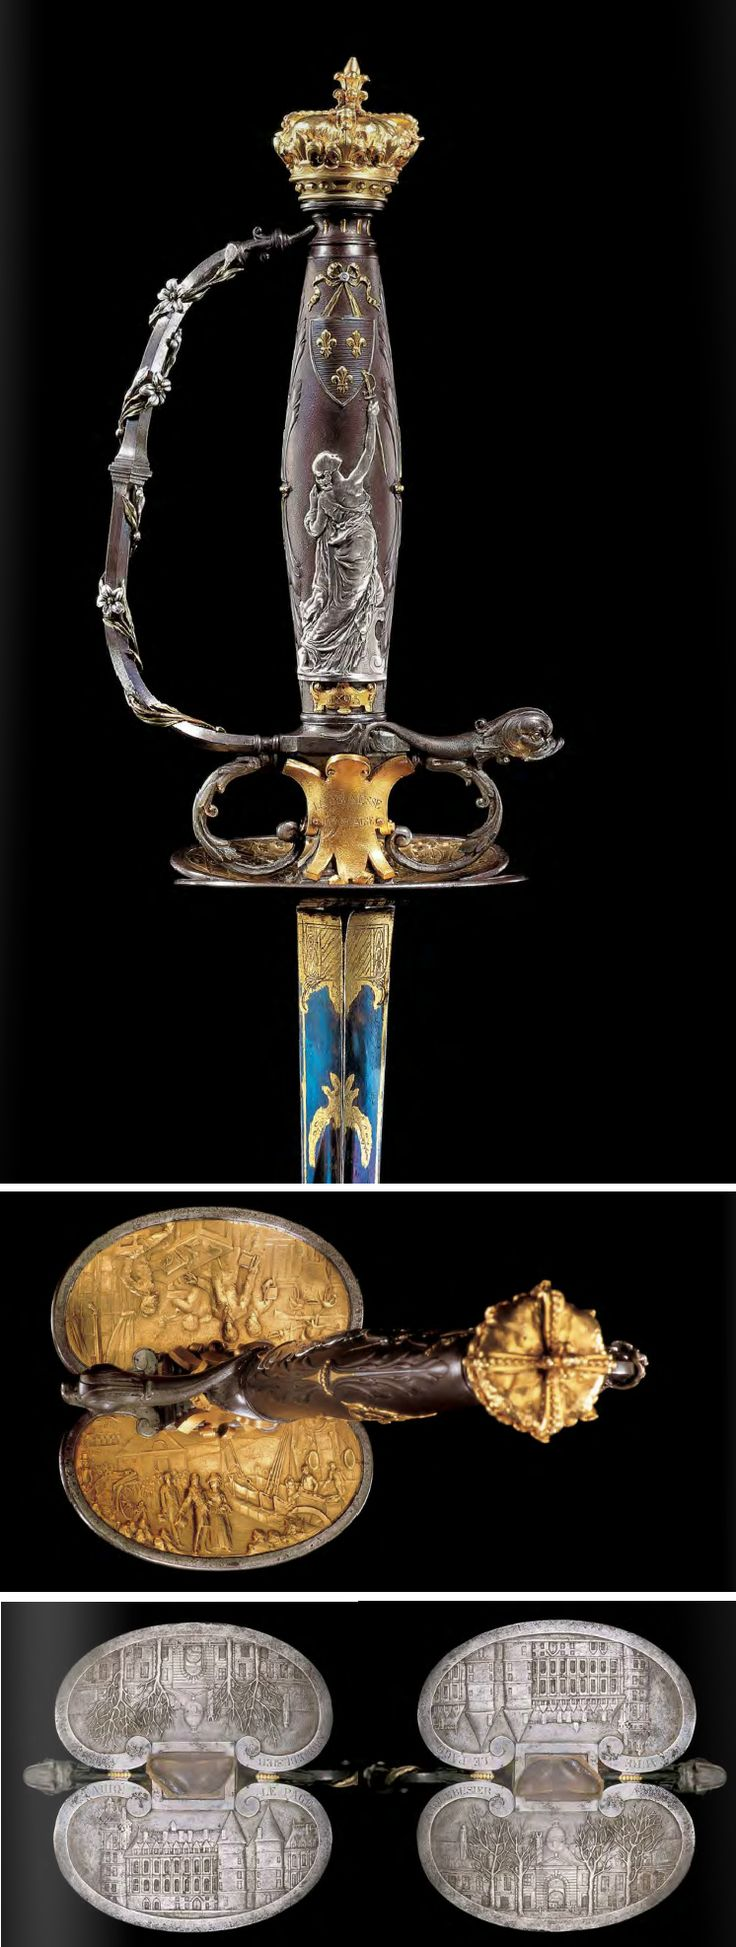 The exquisite and unique gold-mounted small-sword presented by La Jeunesse Francaise to Monsieur le duc d'Orleans claimant to the throne of France ca. 1895. (PF #50 2005)